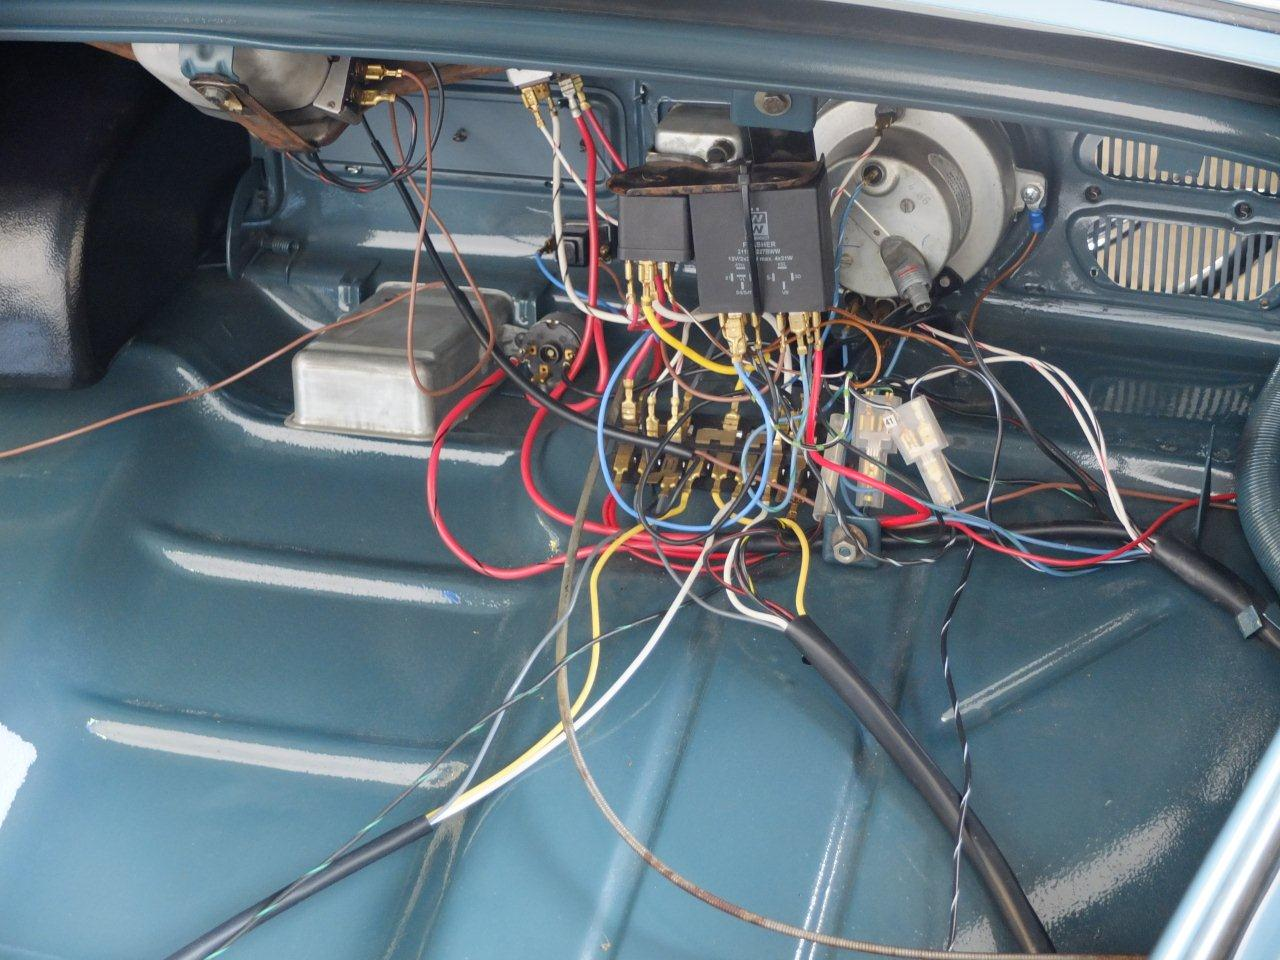 hight resolution of wiring harness for vw bug wiring diagram expert 1970 vw super beetle wiring harness 1970 vw beetle wiring harness